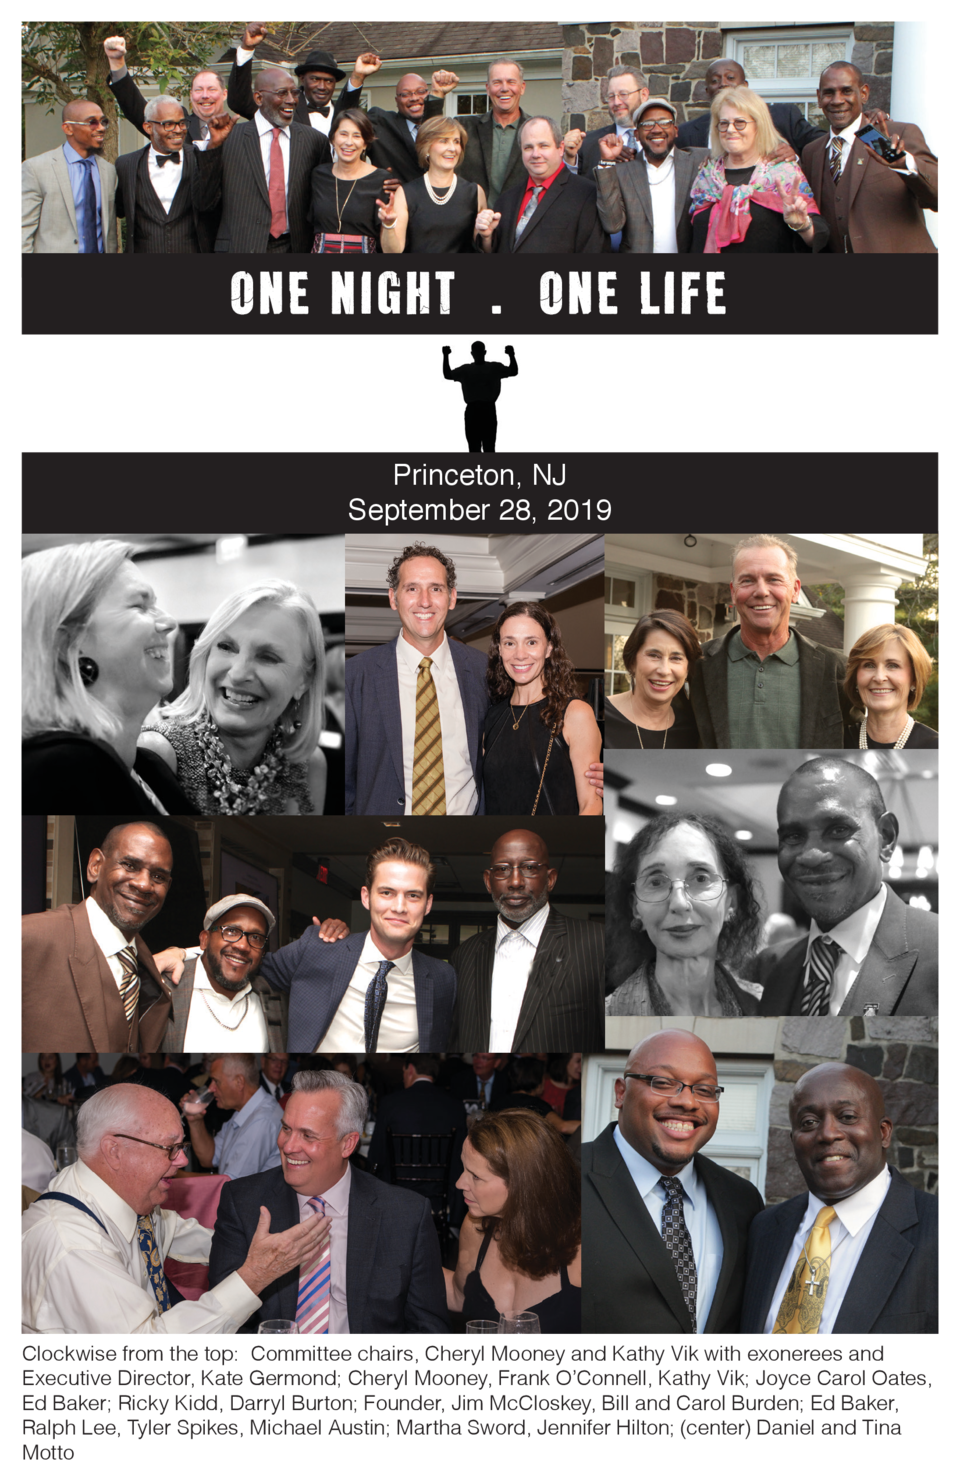 One Night . One life Princeton, NJ September 28, 2019  Clockwise from the top  Committee chairs, Cheryl Mooney and Kathy V...